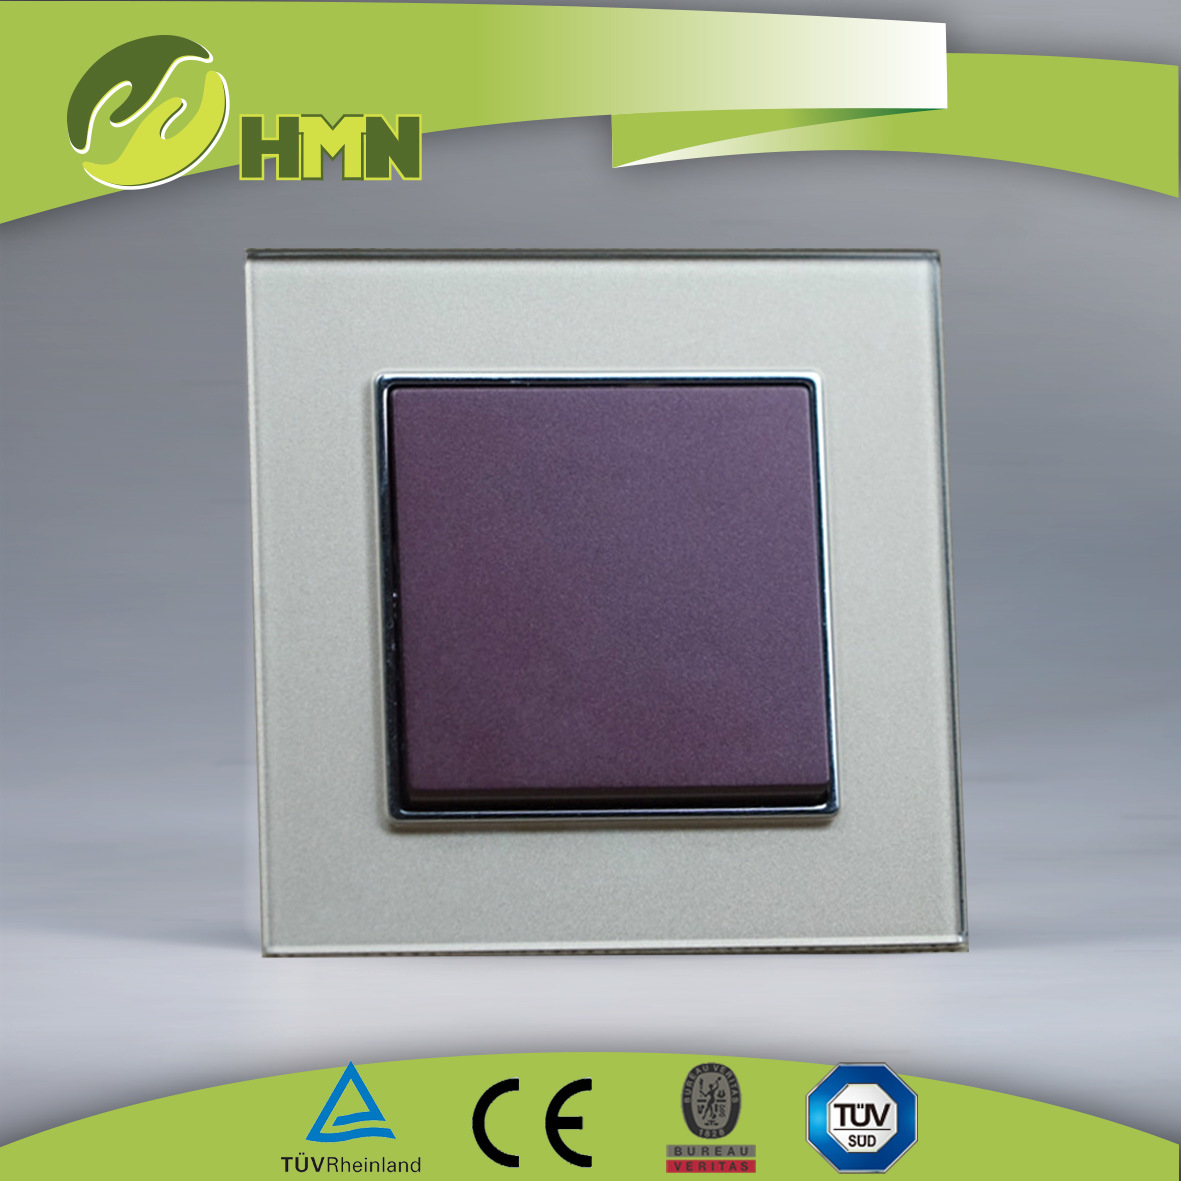 Ce/TUV/CB Certified European Standard Toughened Glass Wall Switch pictures & photos